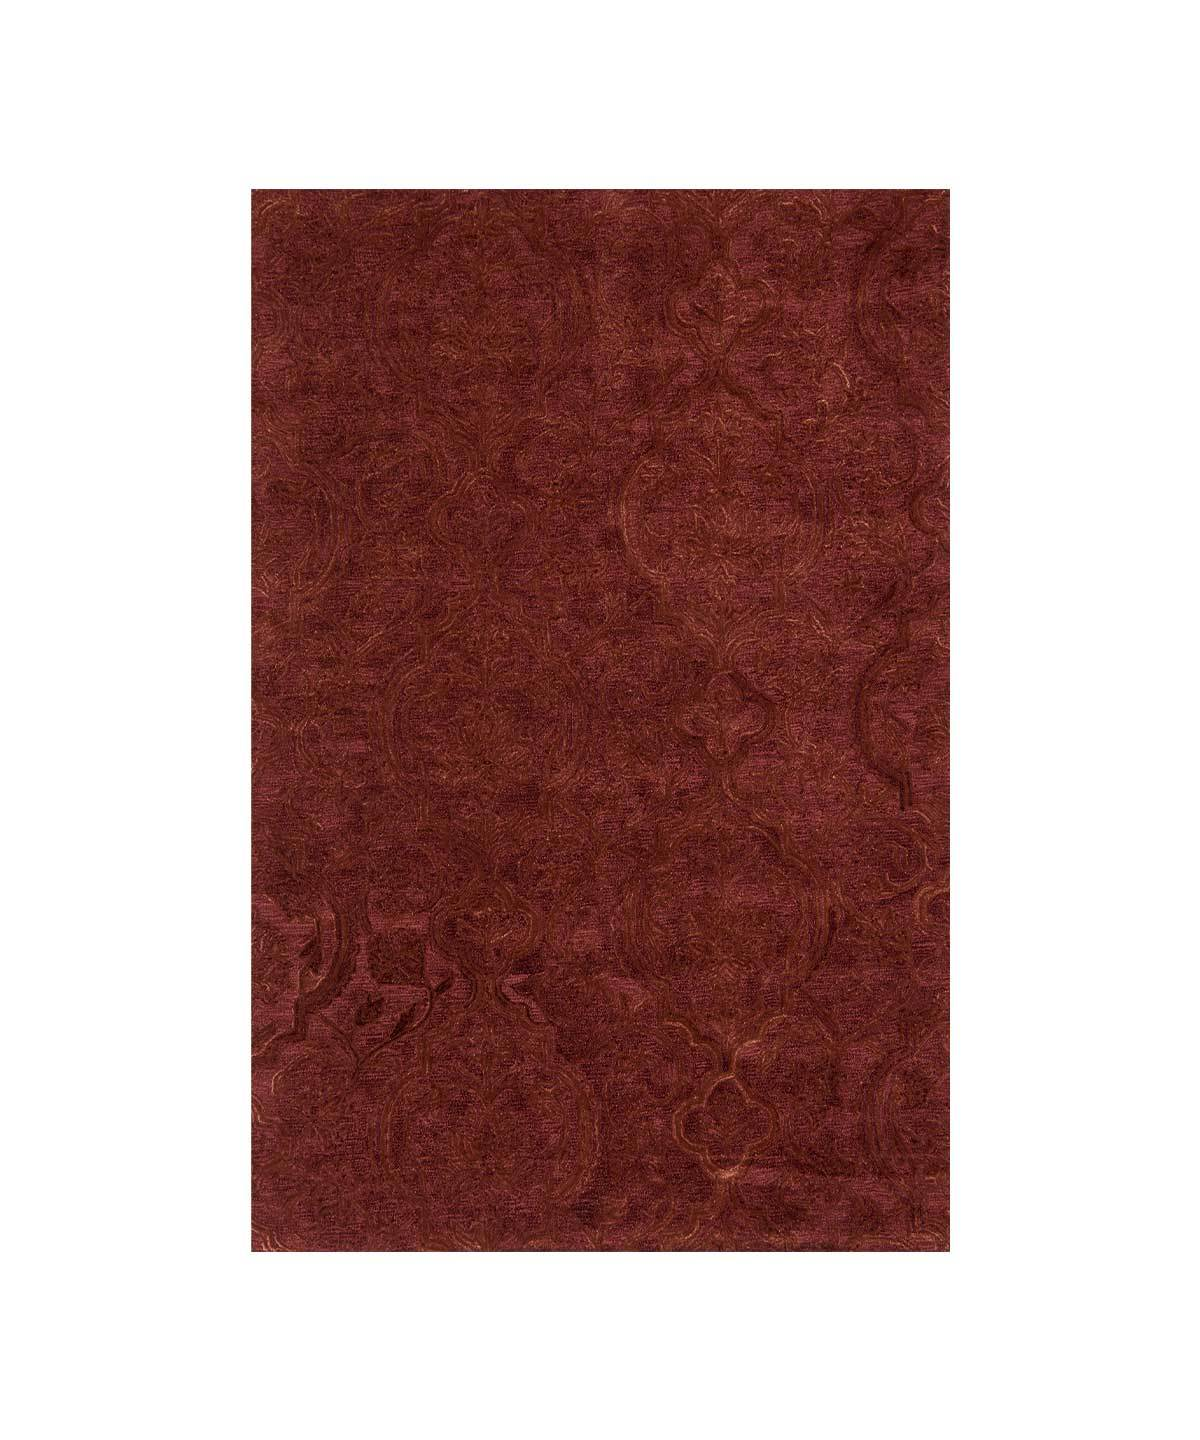 Filigree Rug in Rust by Loloi | TRNK